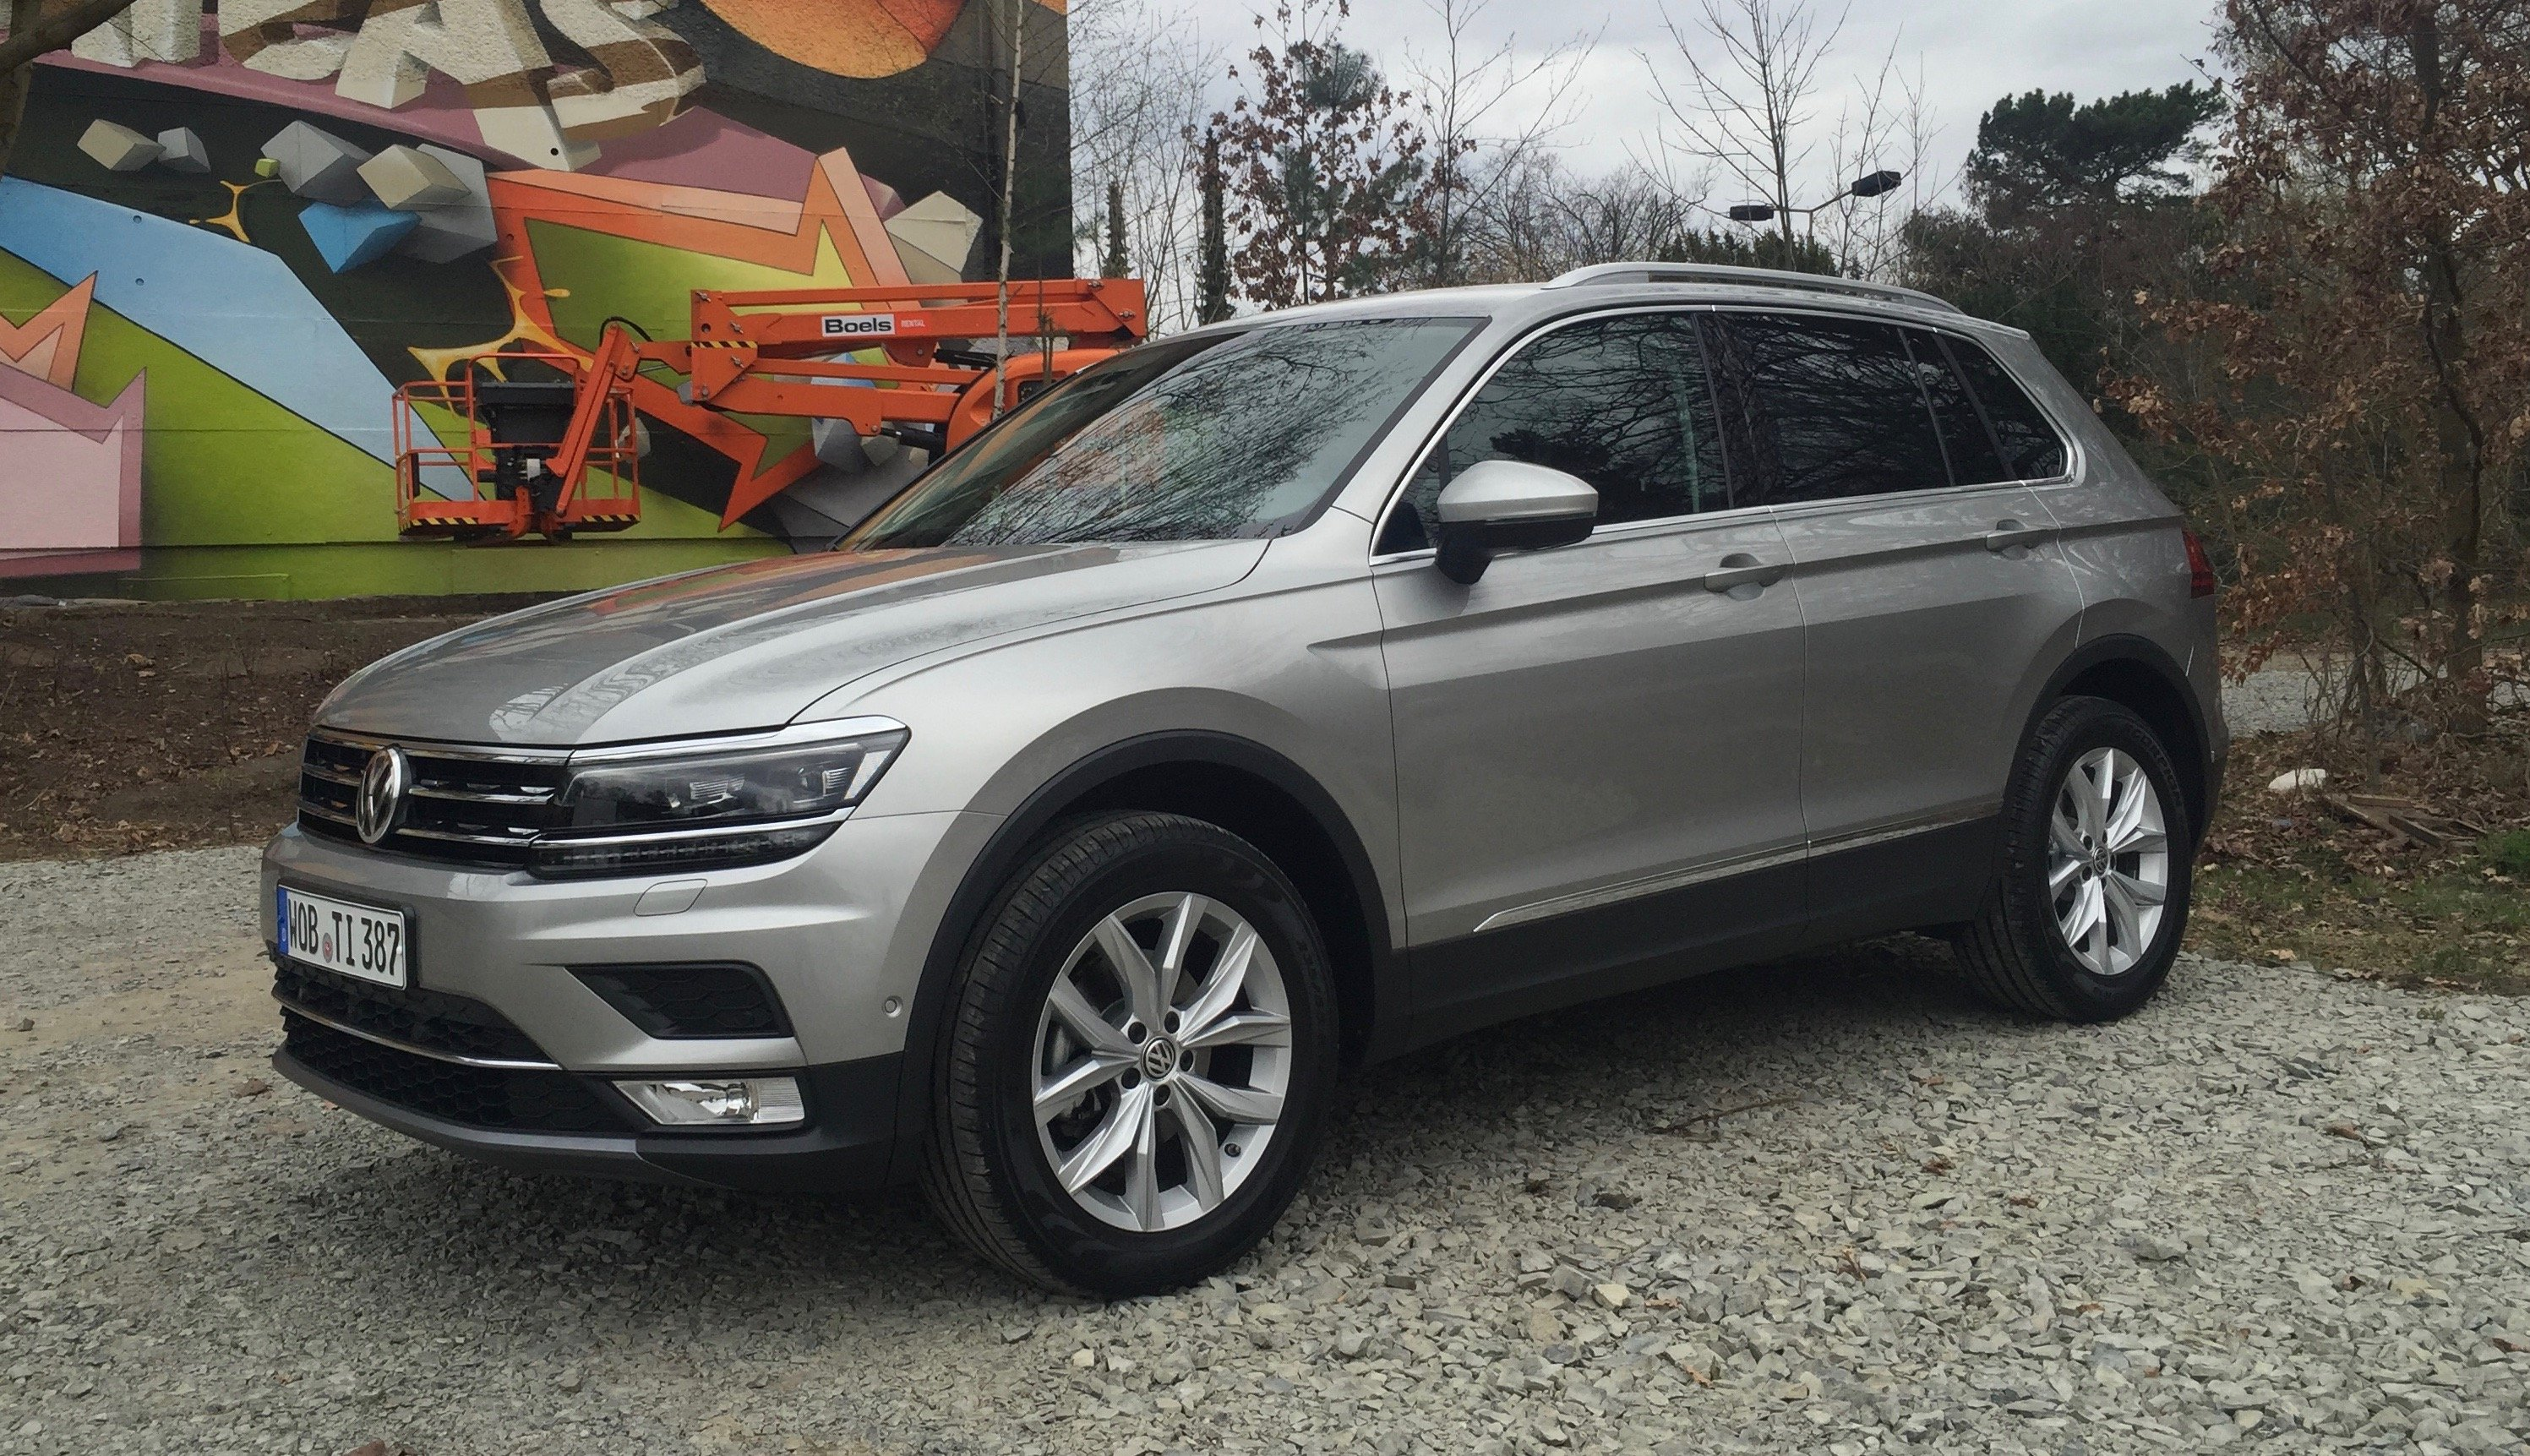 Bmw New Car >> 2016 Volkswagen Tiguan Review - photos | CarAdvice